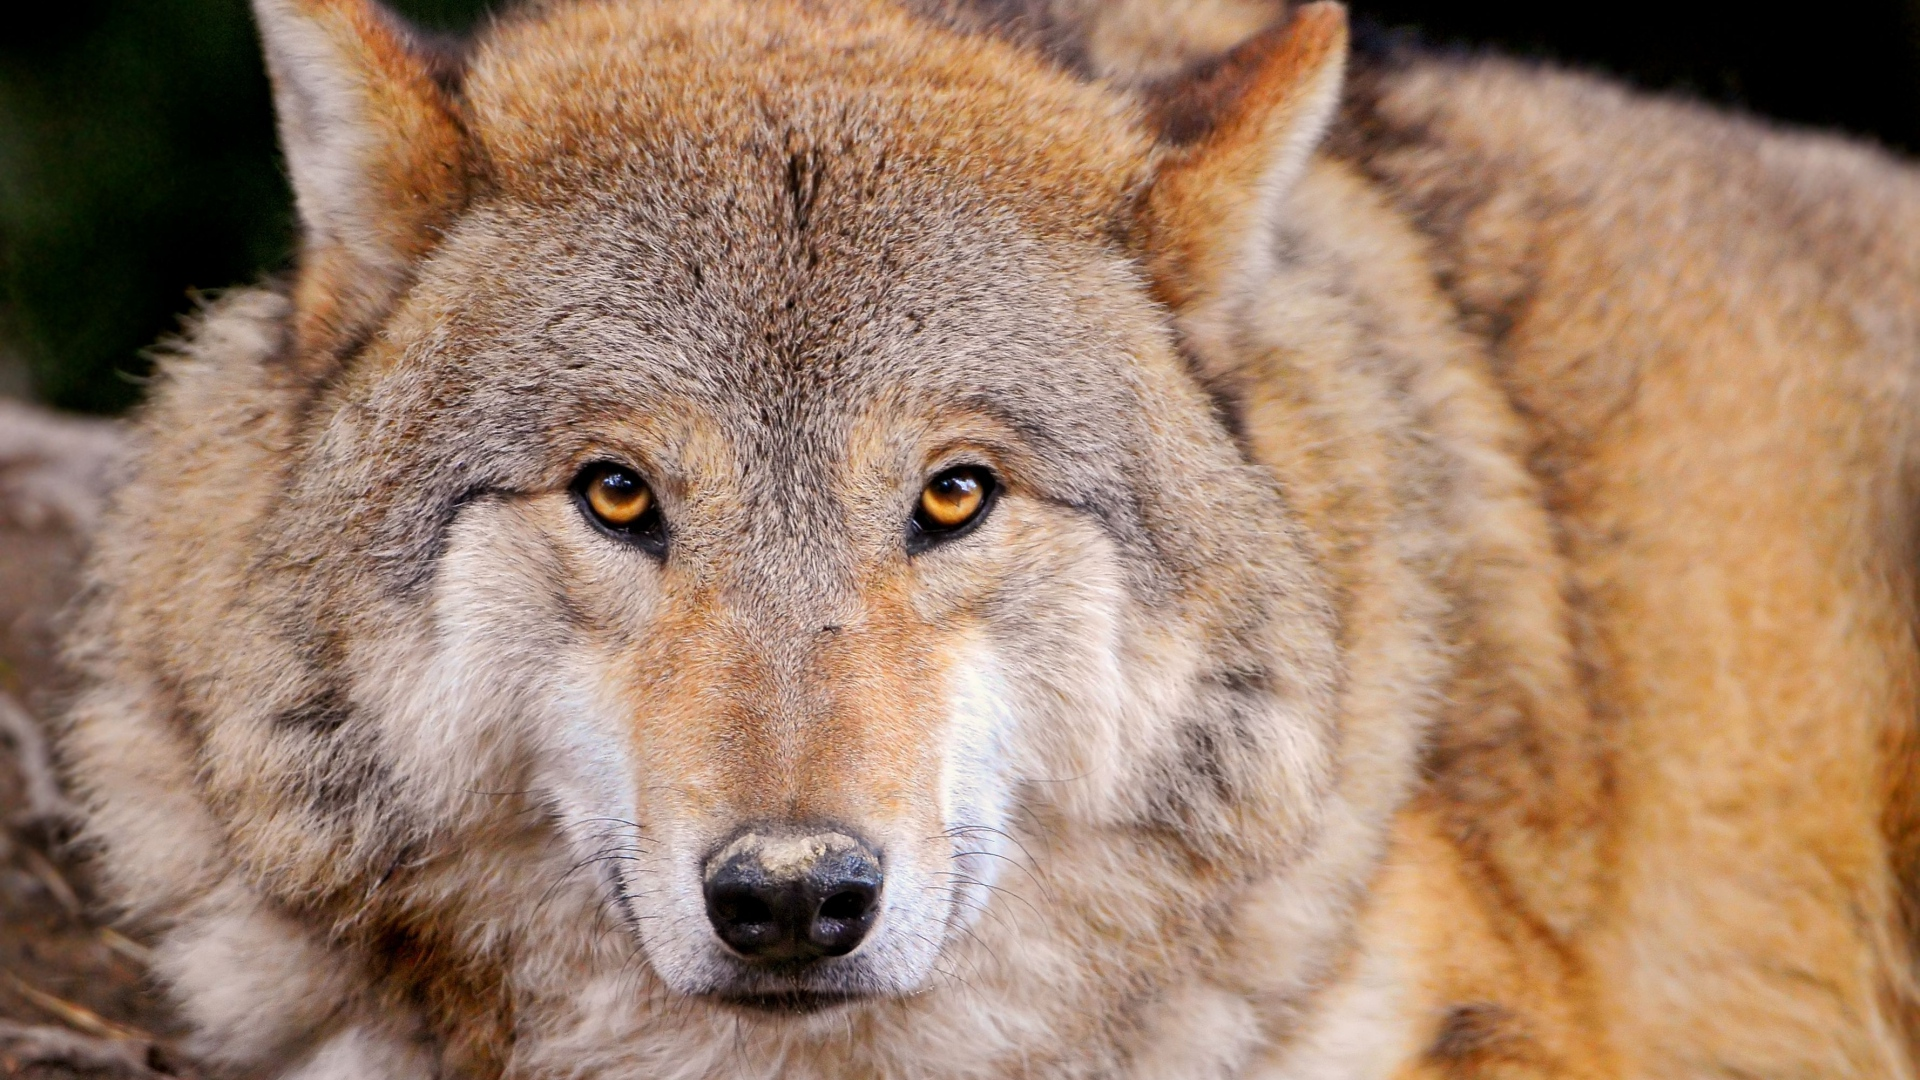 Hd Wolf Backgrounds: Wolf Wallpapers, Pictures, Images